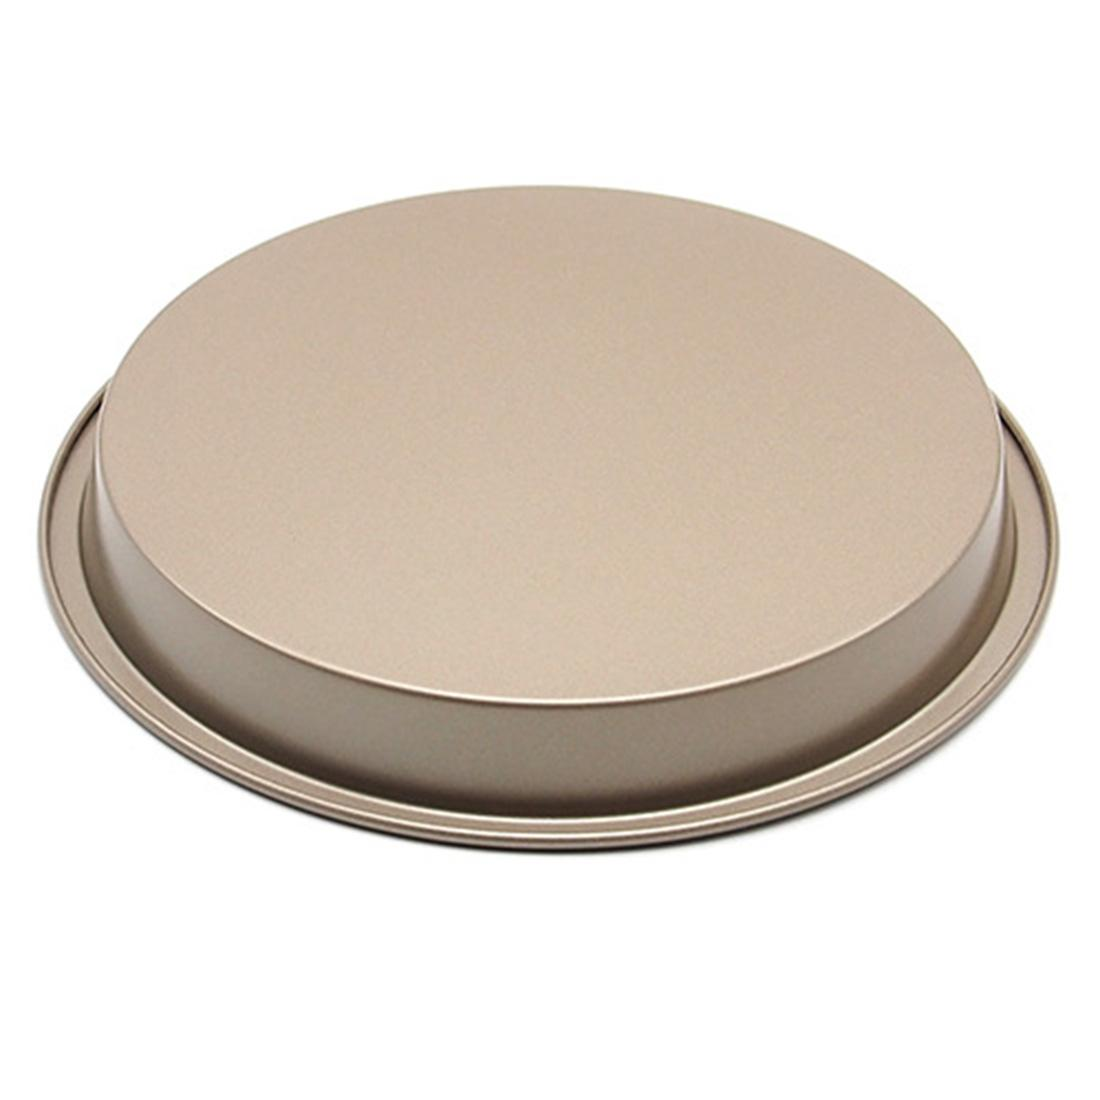 360DSC 8-Inch Round Carbon Steel Non-stick Baking Pan Cookies PlatePizza Pan Tray Bakeware - Gold